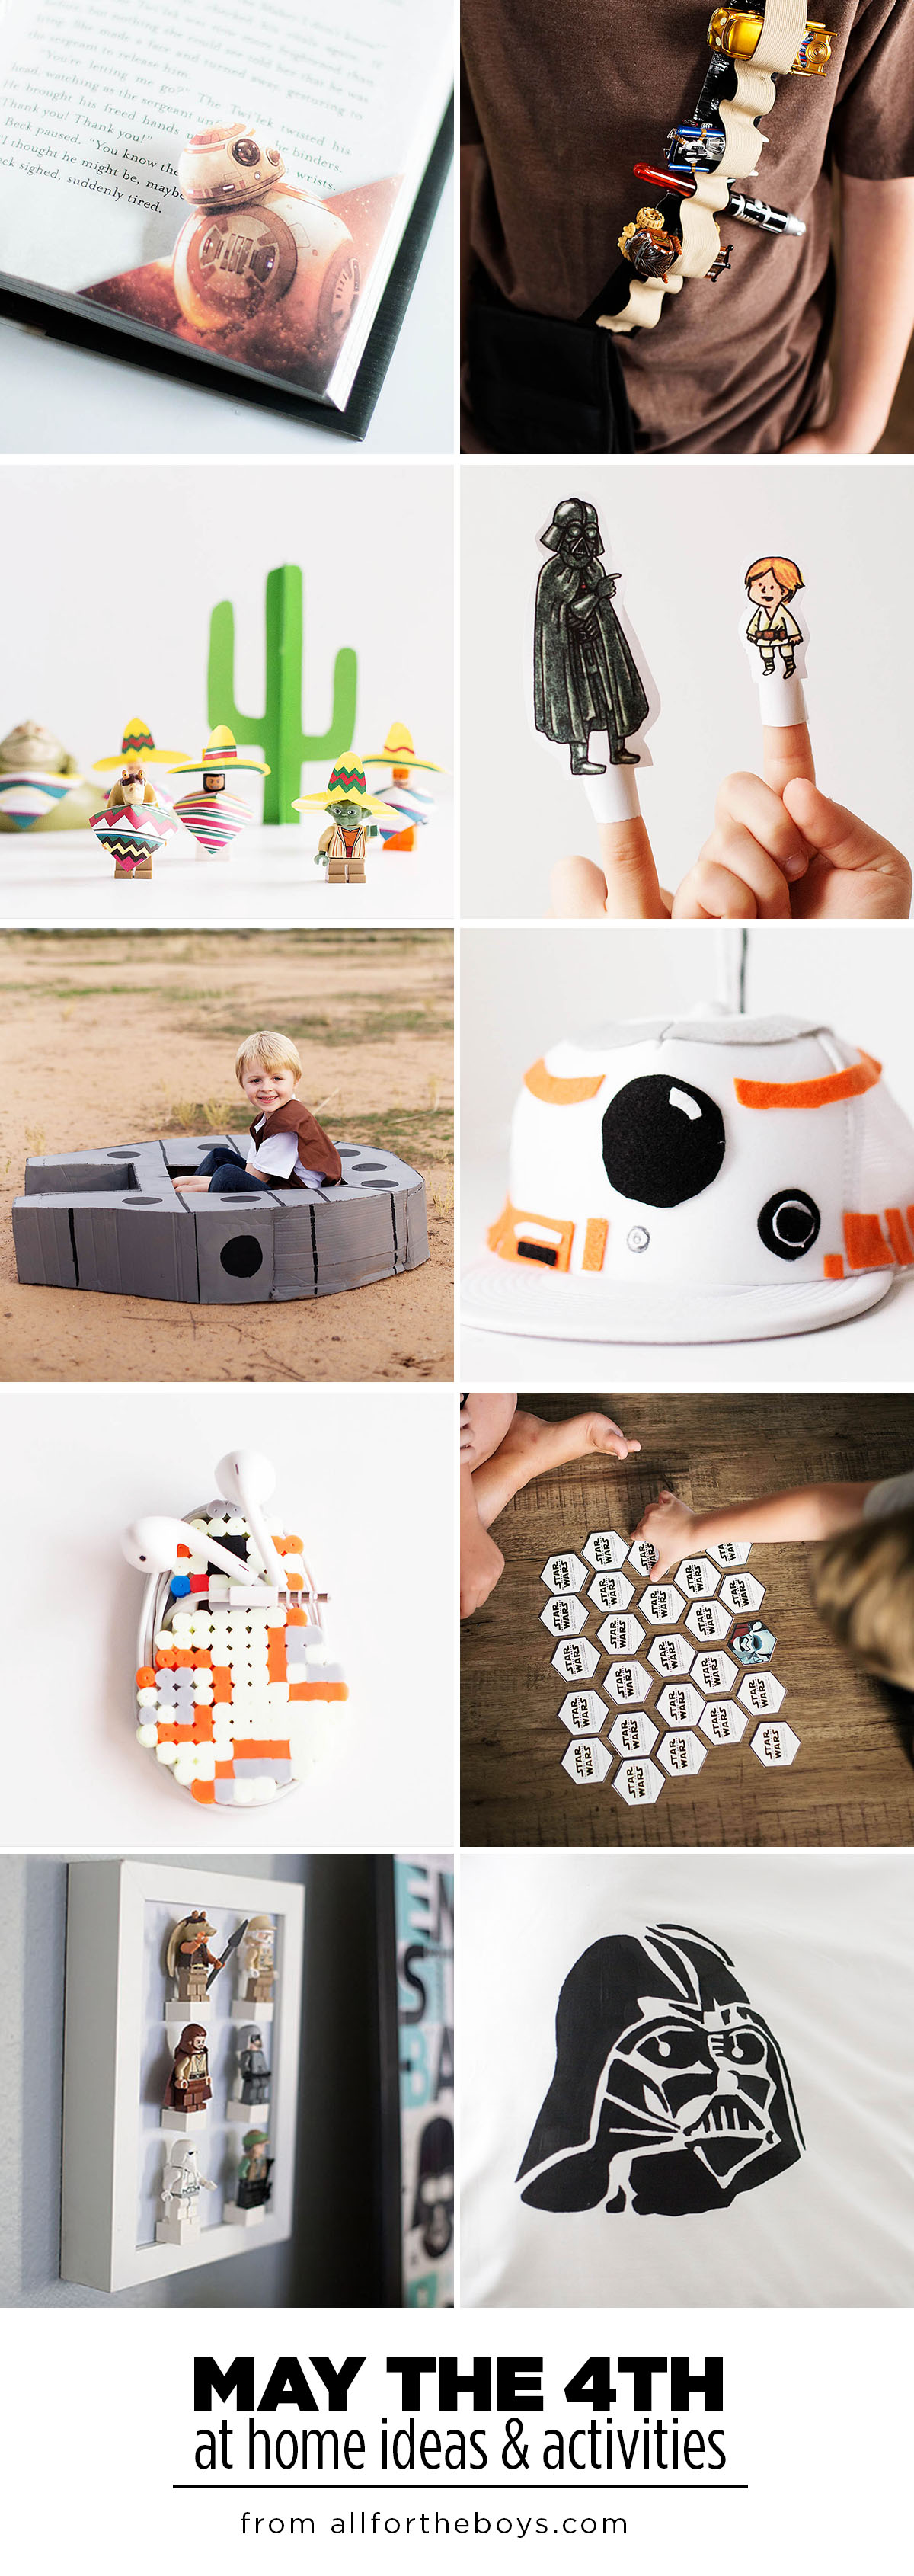 May the Fourth Star Wars activities and ideas